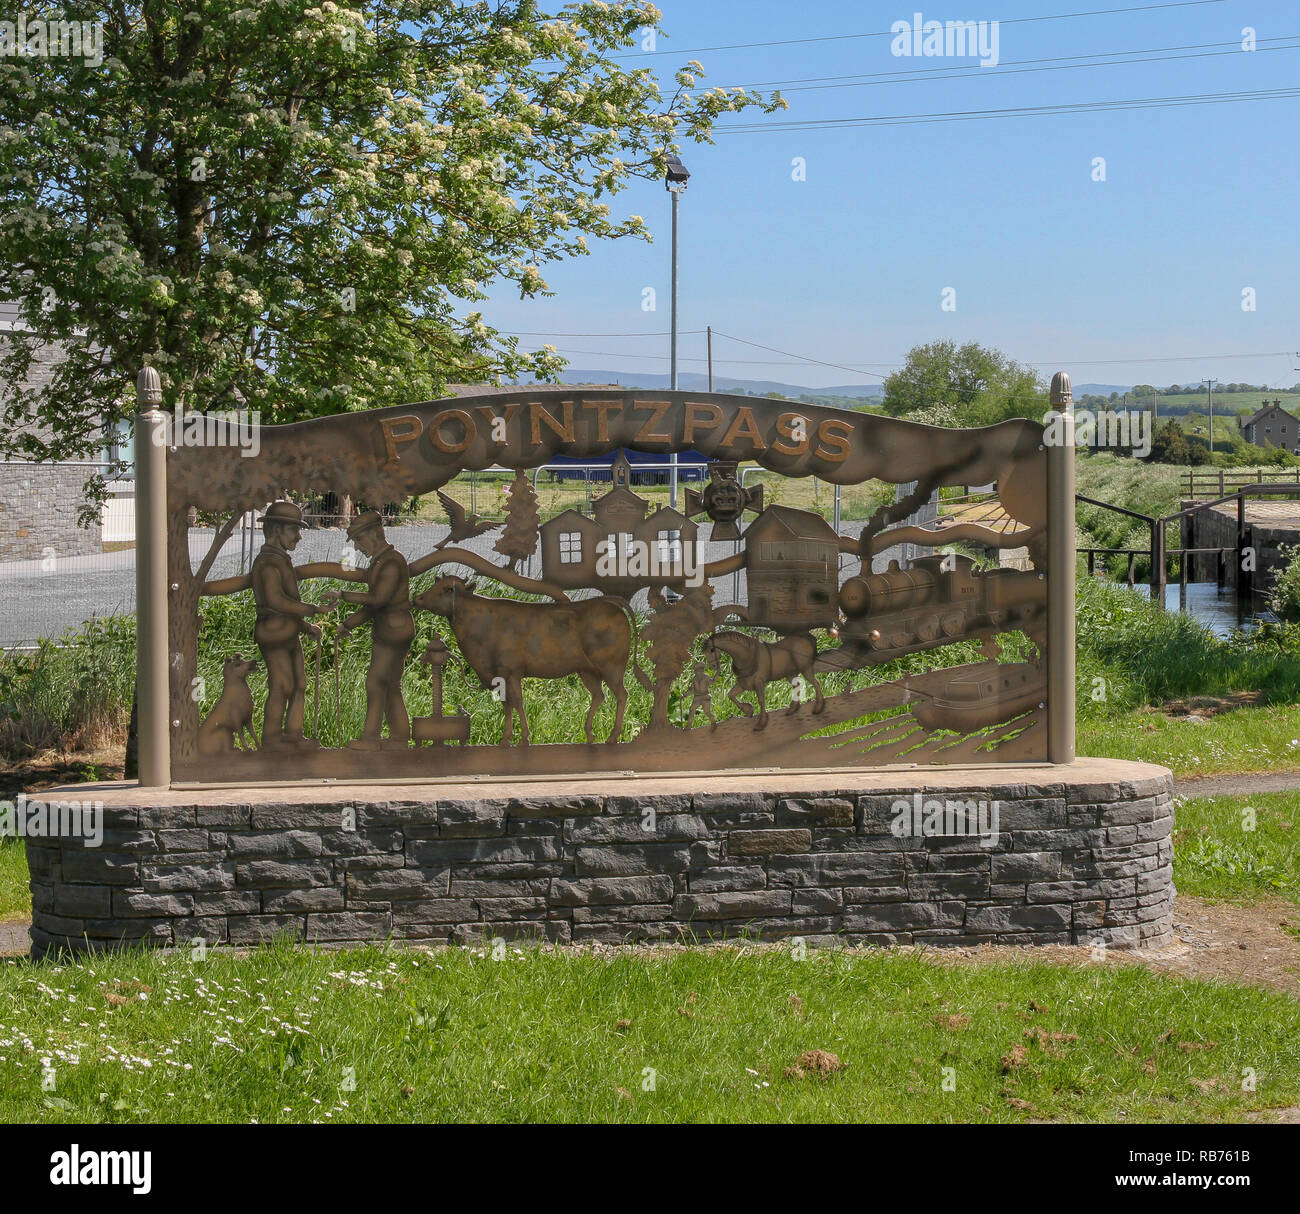 Northern Ireland village sign at Poyntzpass, County Down providing historical information on the village on the Newry Canal. - Stock Image